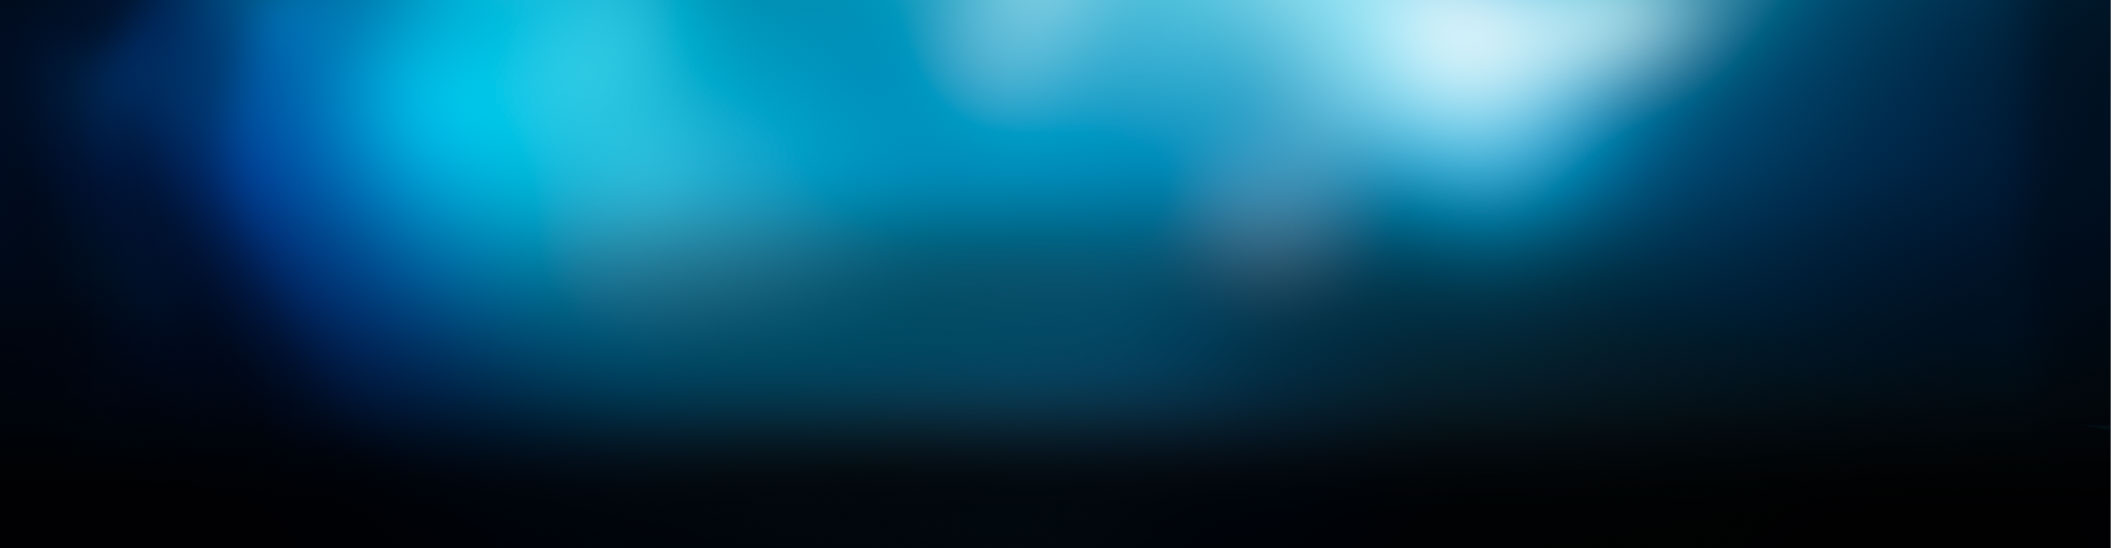 slider_background